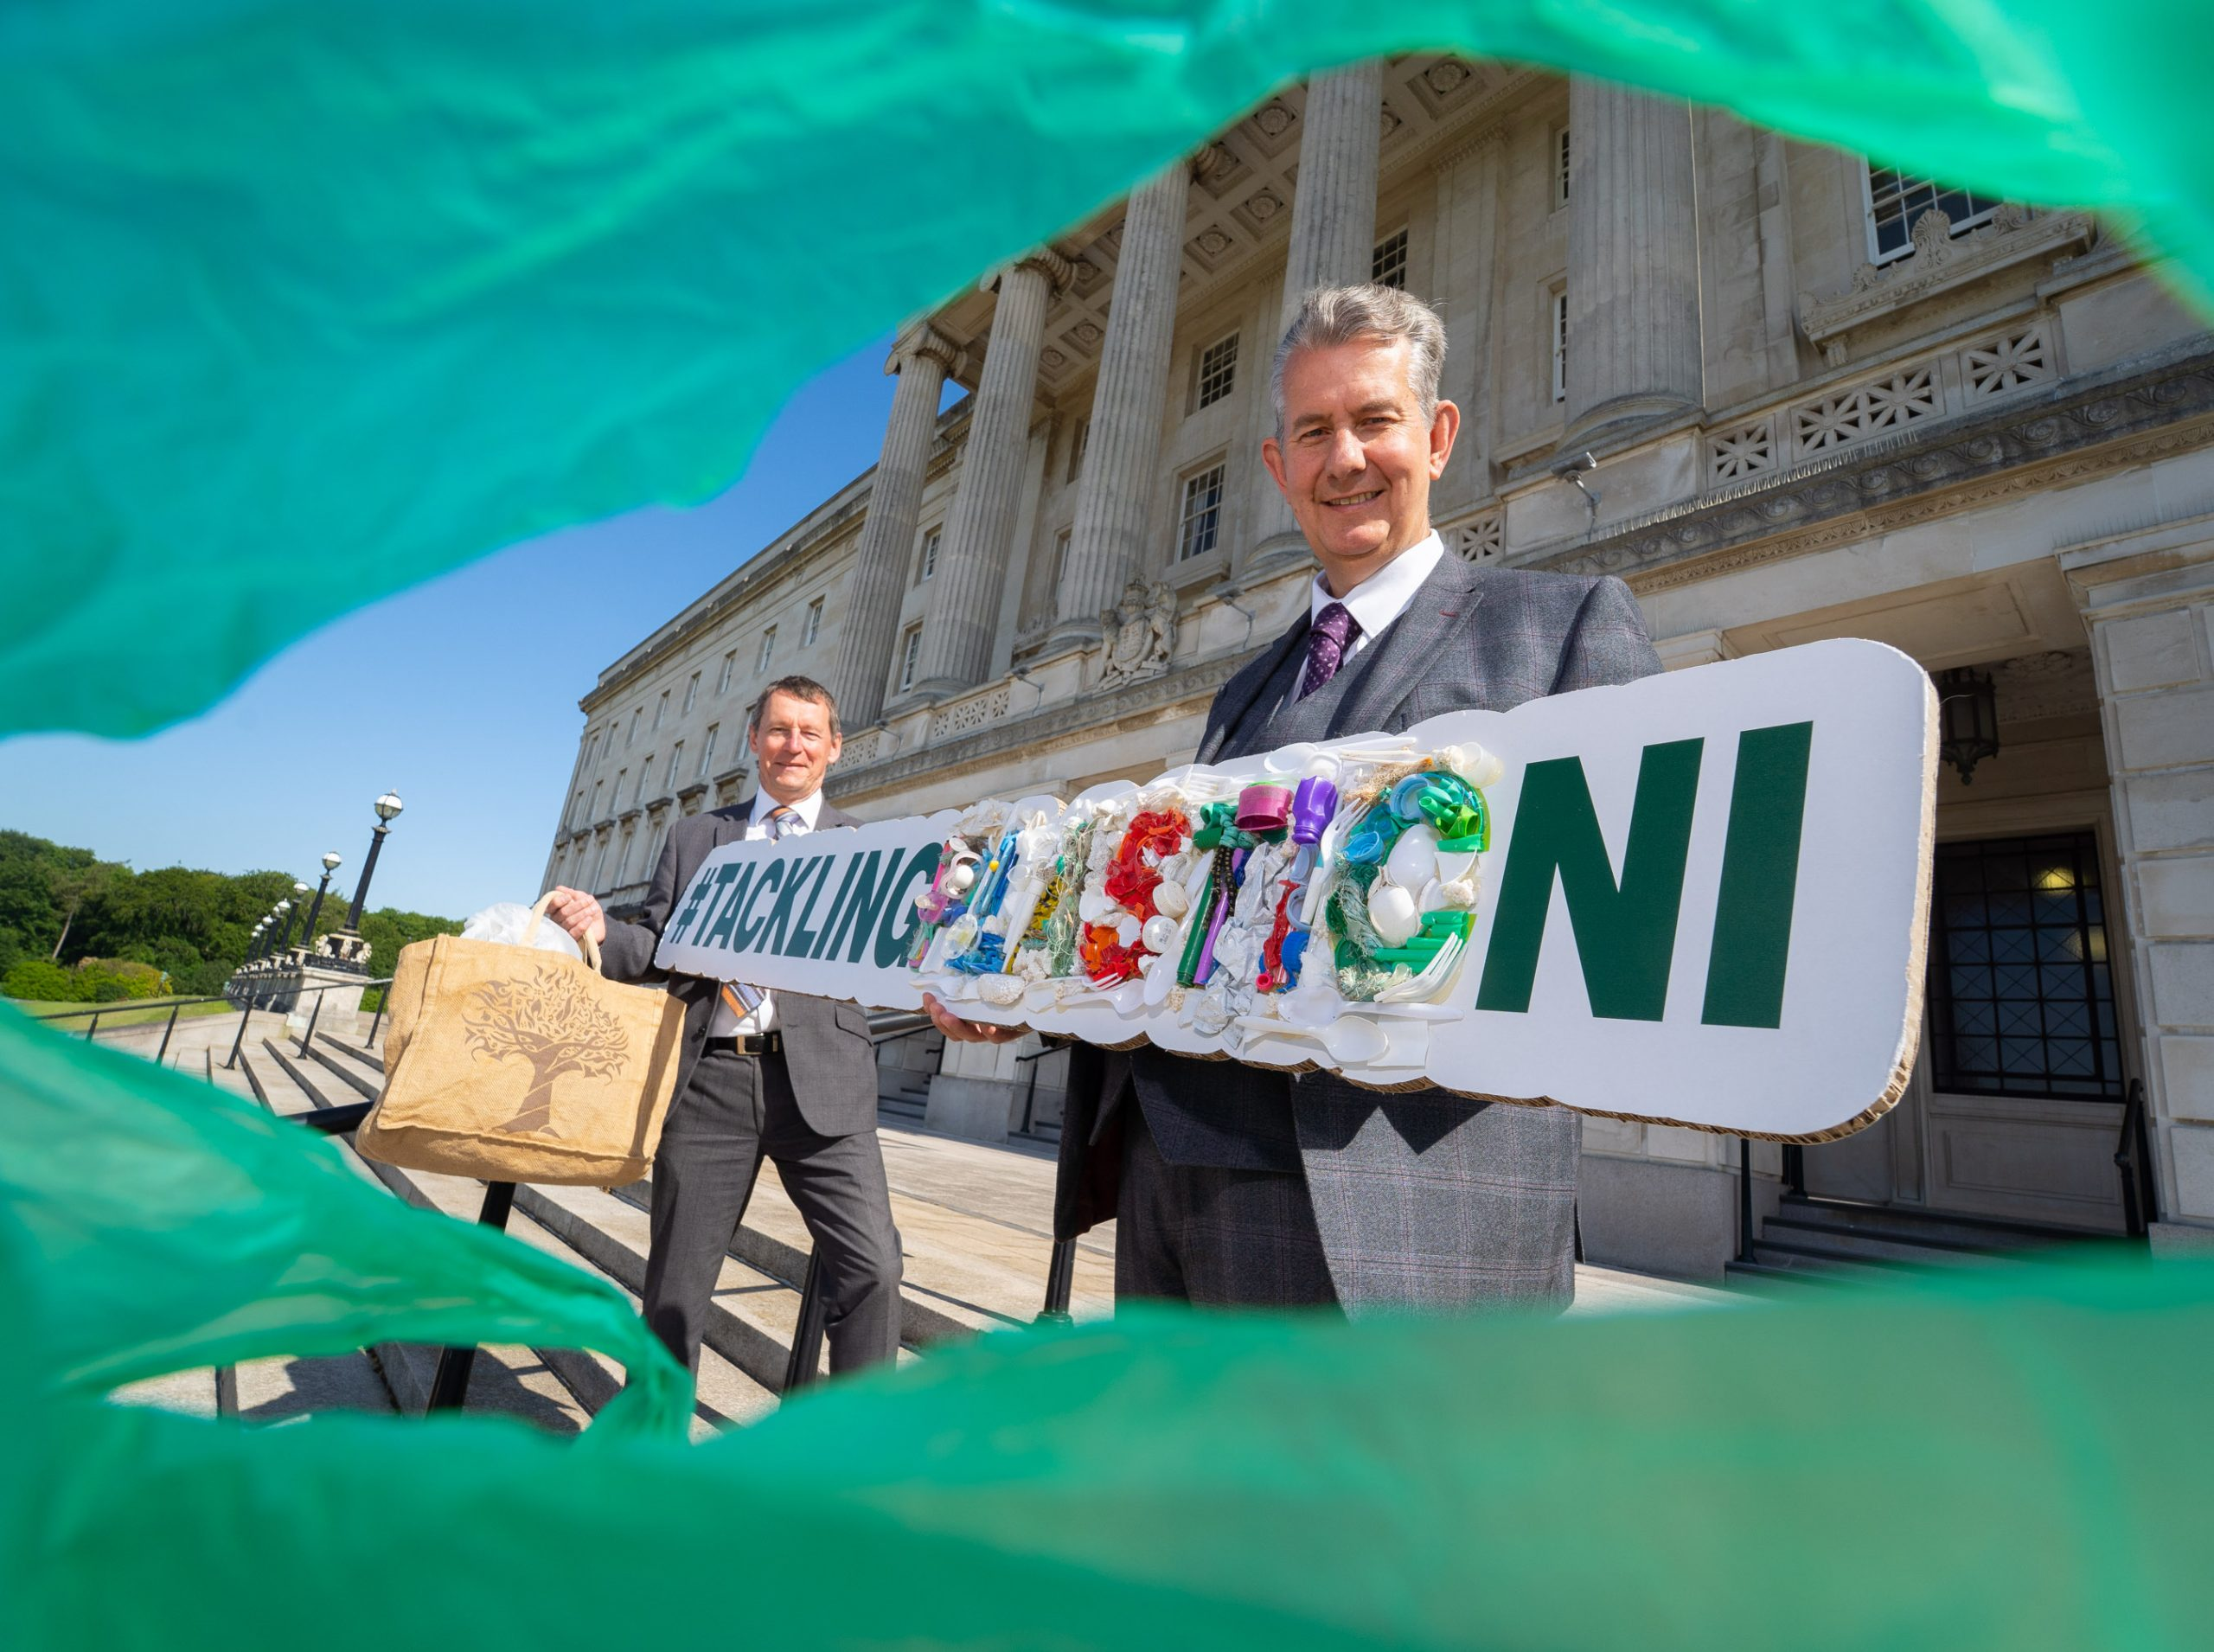 Be part of the solution against plastic pollution – Plastic Free July launched